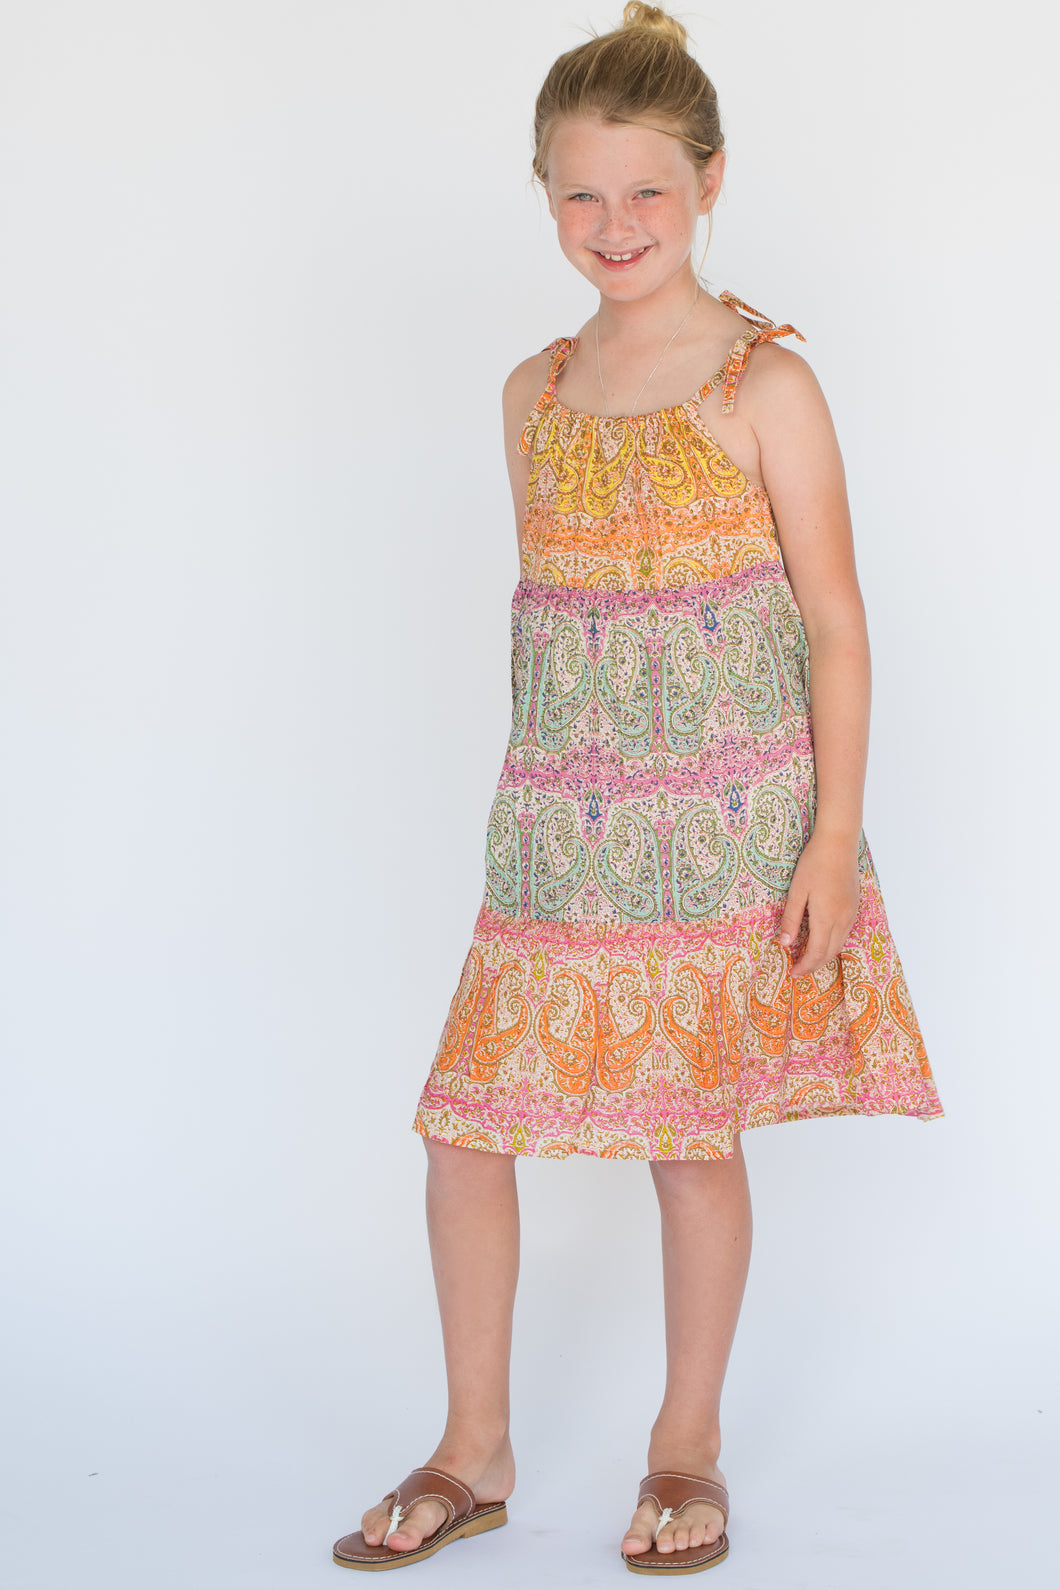 Multicolor Paisley Shoulder-Tie Dress - Kids Wholesale Boutique Clothing, Dress - Girls Dresses, Yo Baby Wholesale - Yo Baby